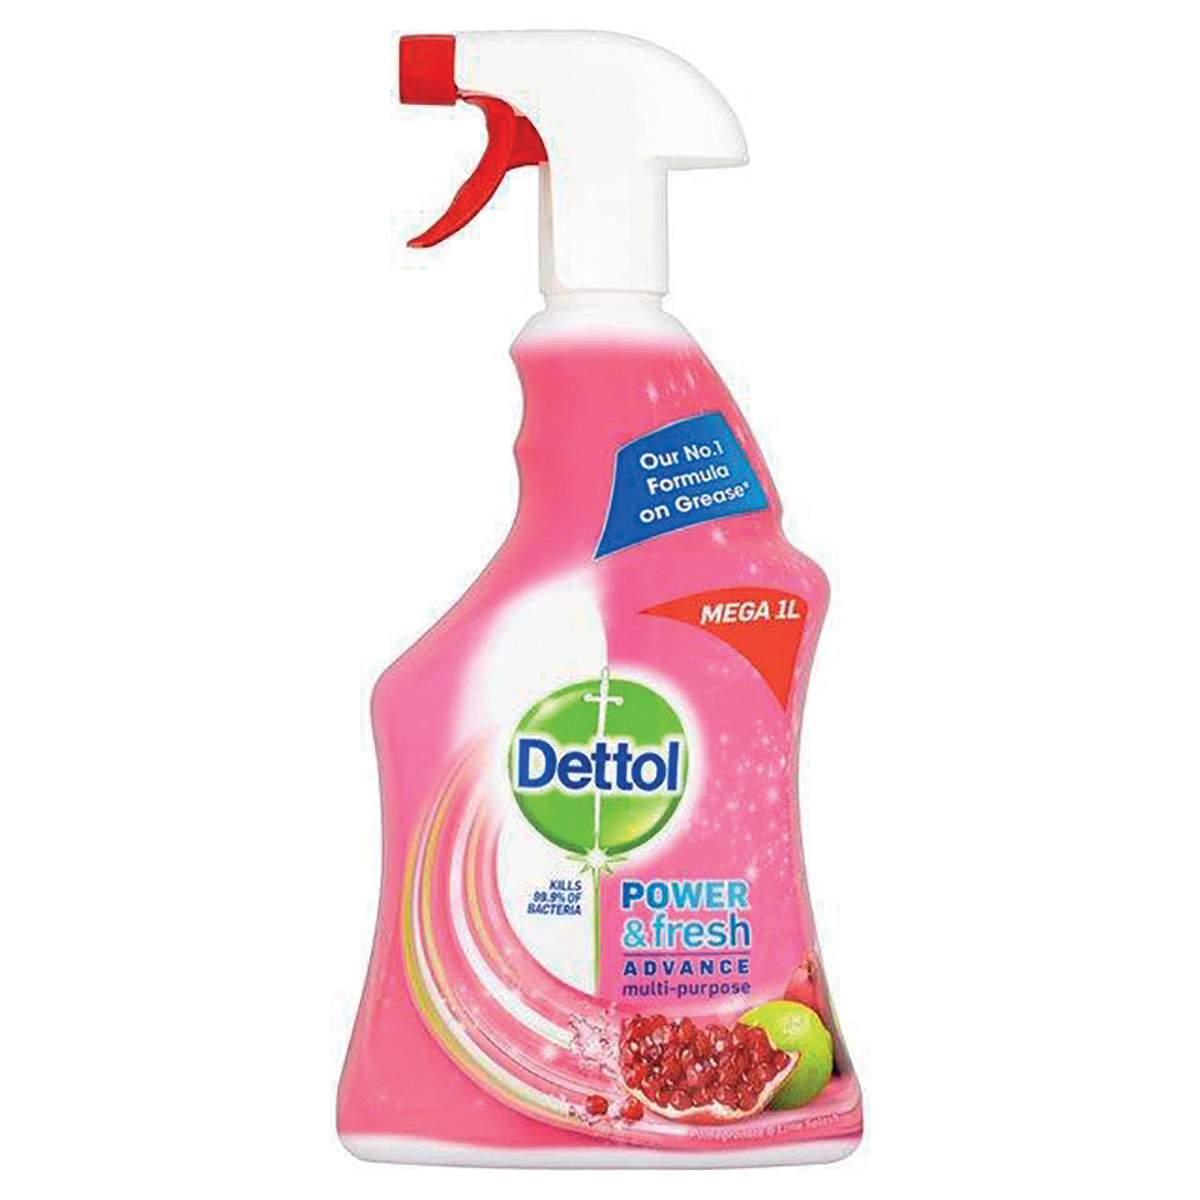 Dettol Power Fresh Pomegranate Antibacterial Multi Purpose Cleaner Trigger Spray 1 Litre Ref 3007938